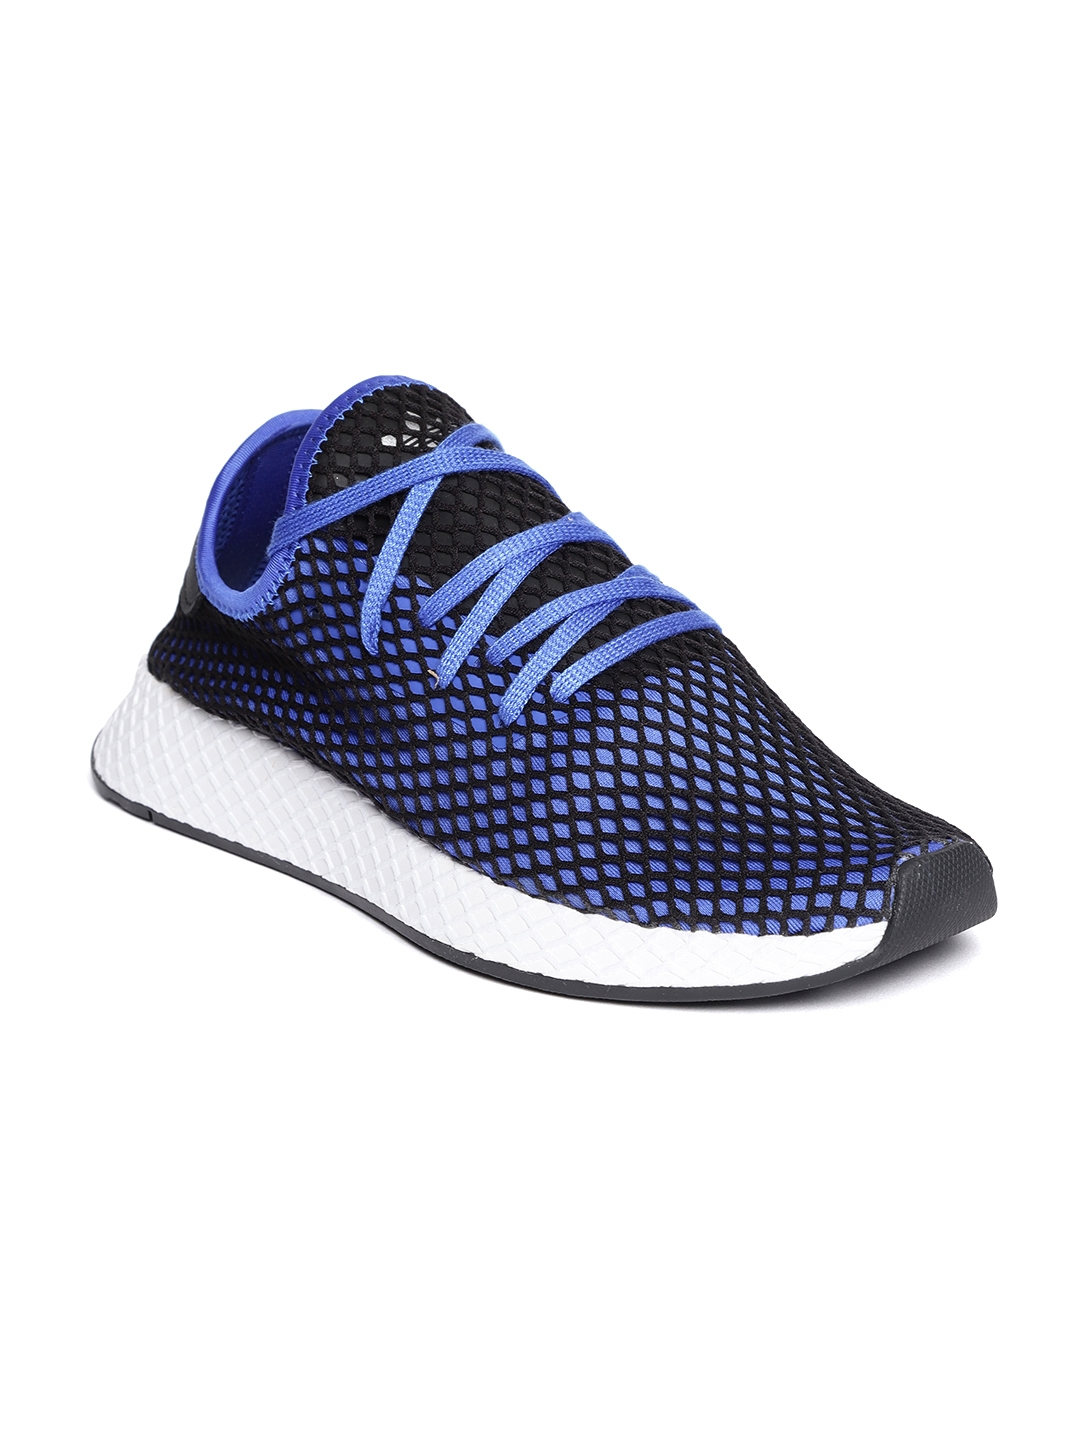 f140ebe0fc0e7 Buy Adidas Originals Men Blue   Black DEERUPT Runner Sneakers - Casual Shoes  for Men 6842441